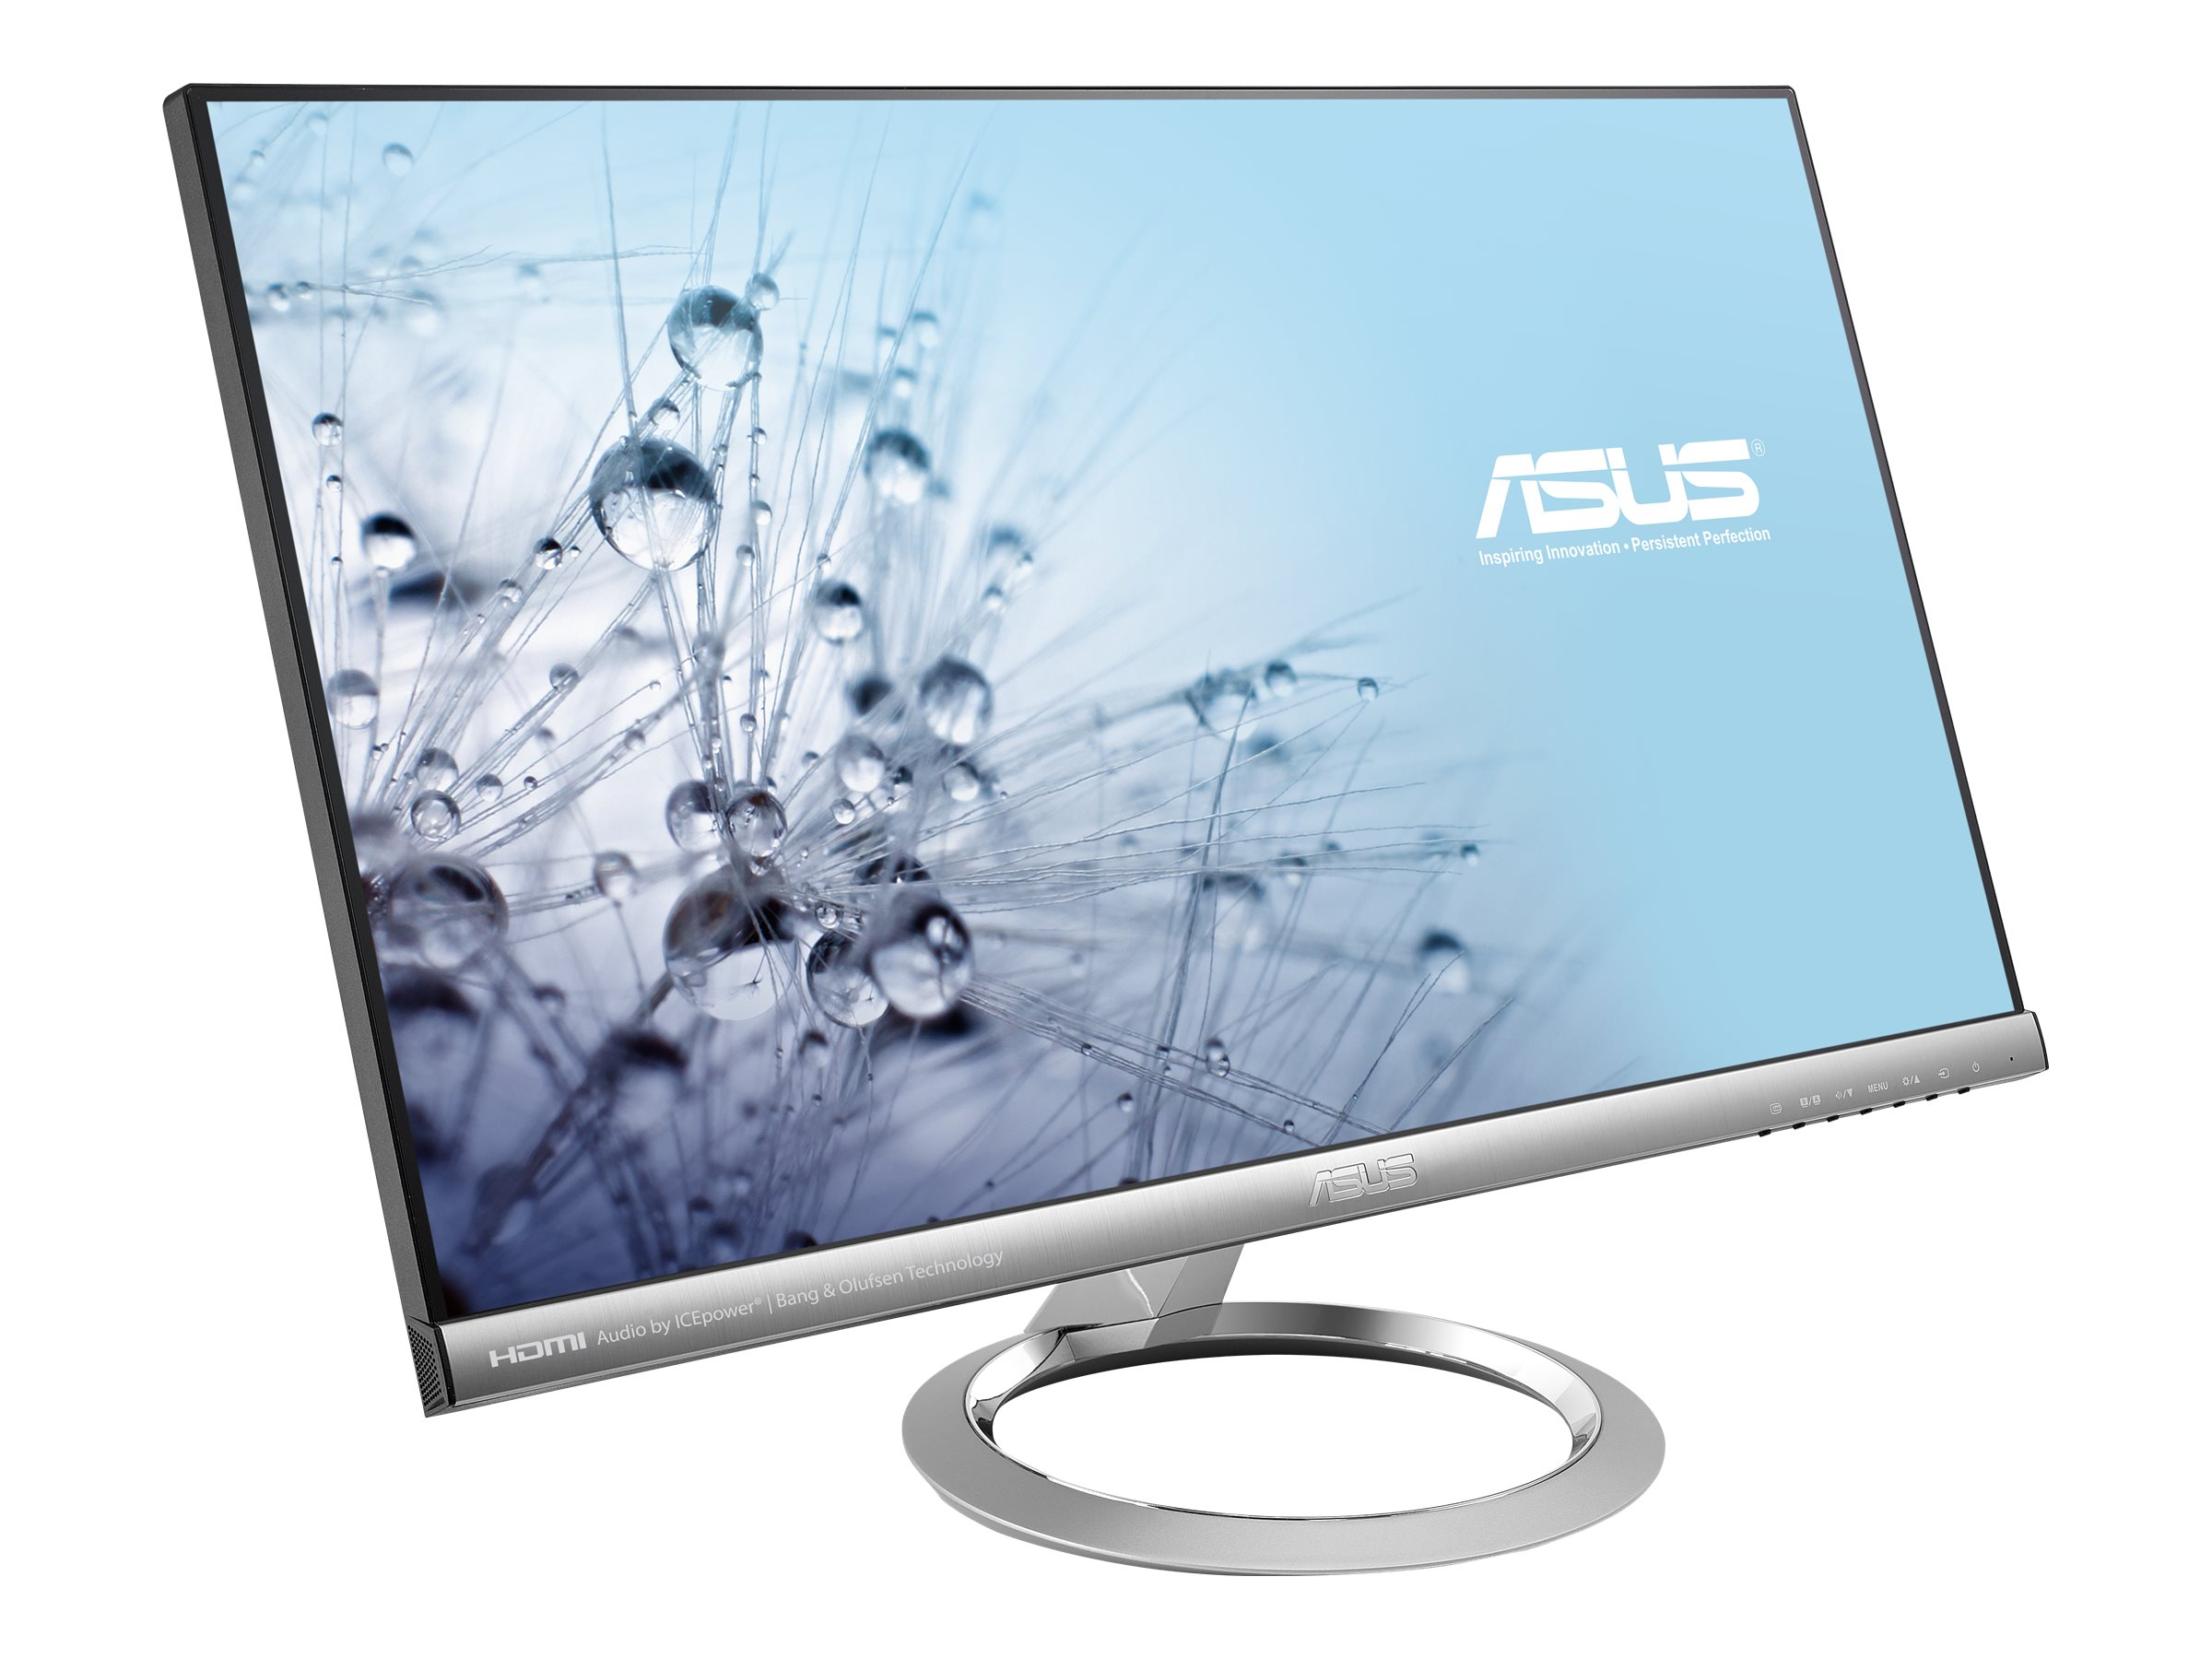 Asus 25 MX259H Full HD LED-LCD Monitor, Black, MX259H